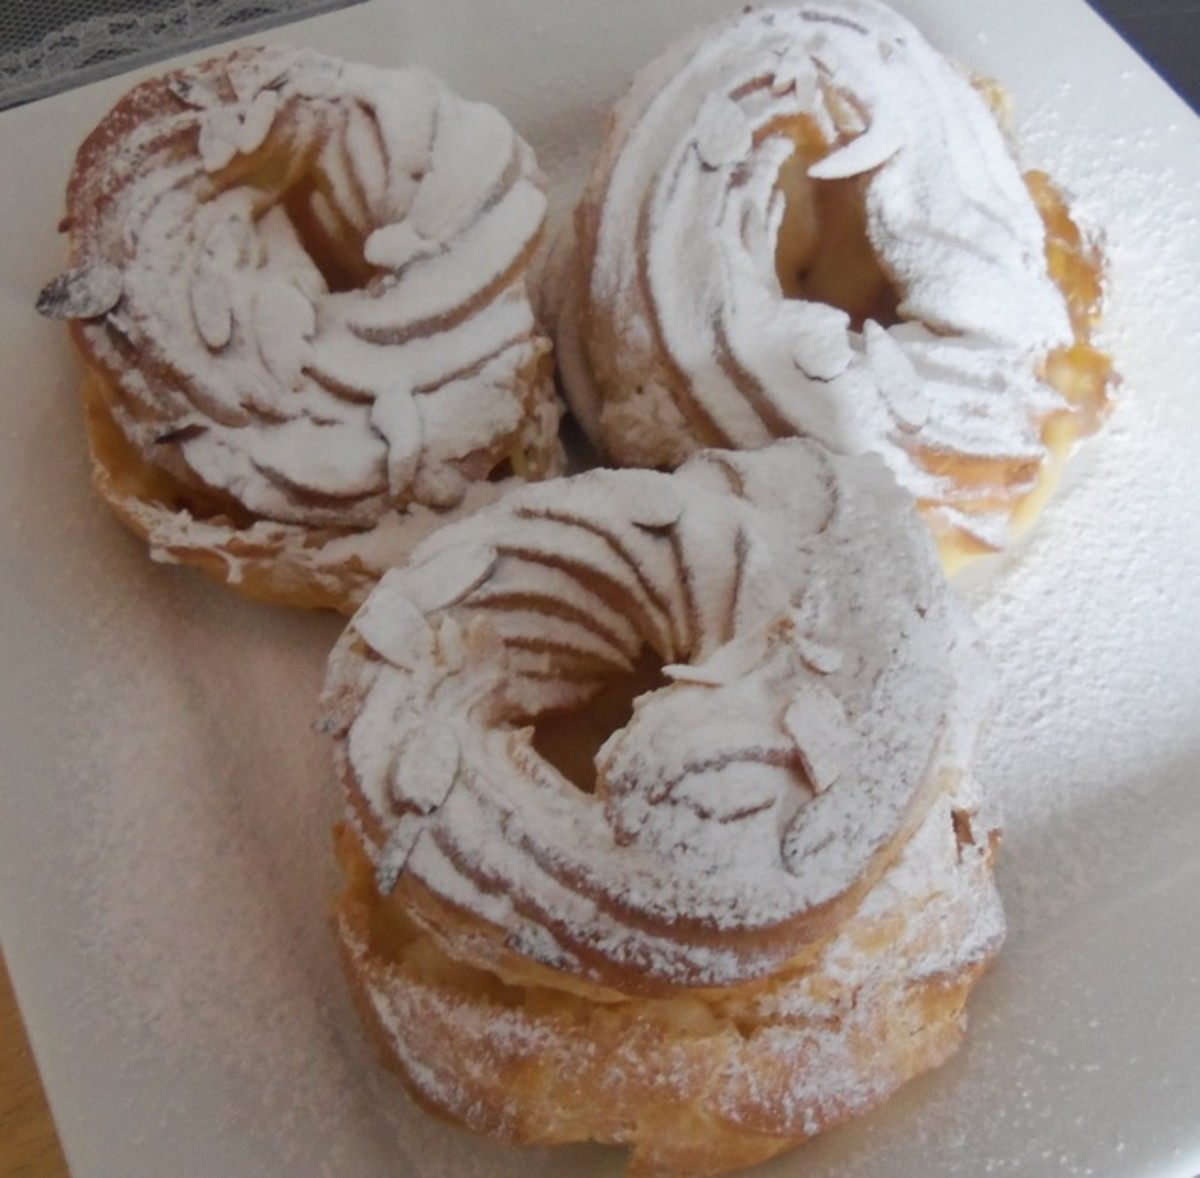 Paris-Brest are one of the great desserts you can make using choux pastry.